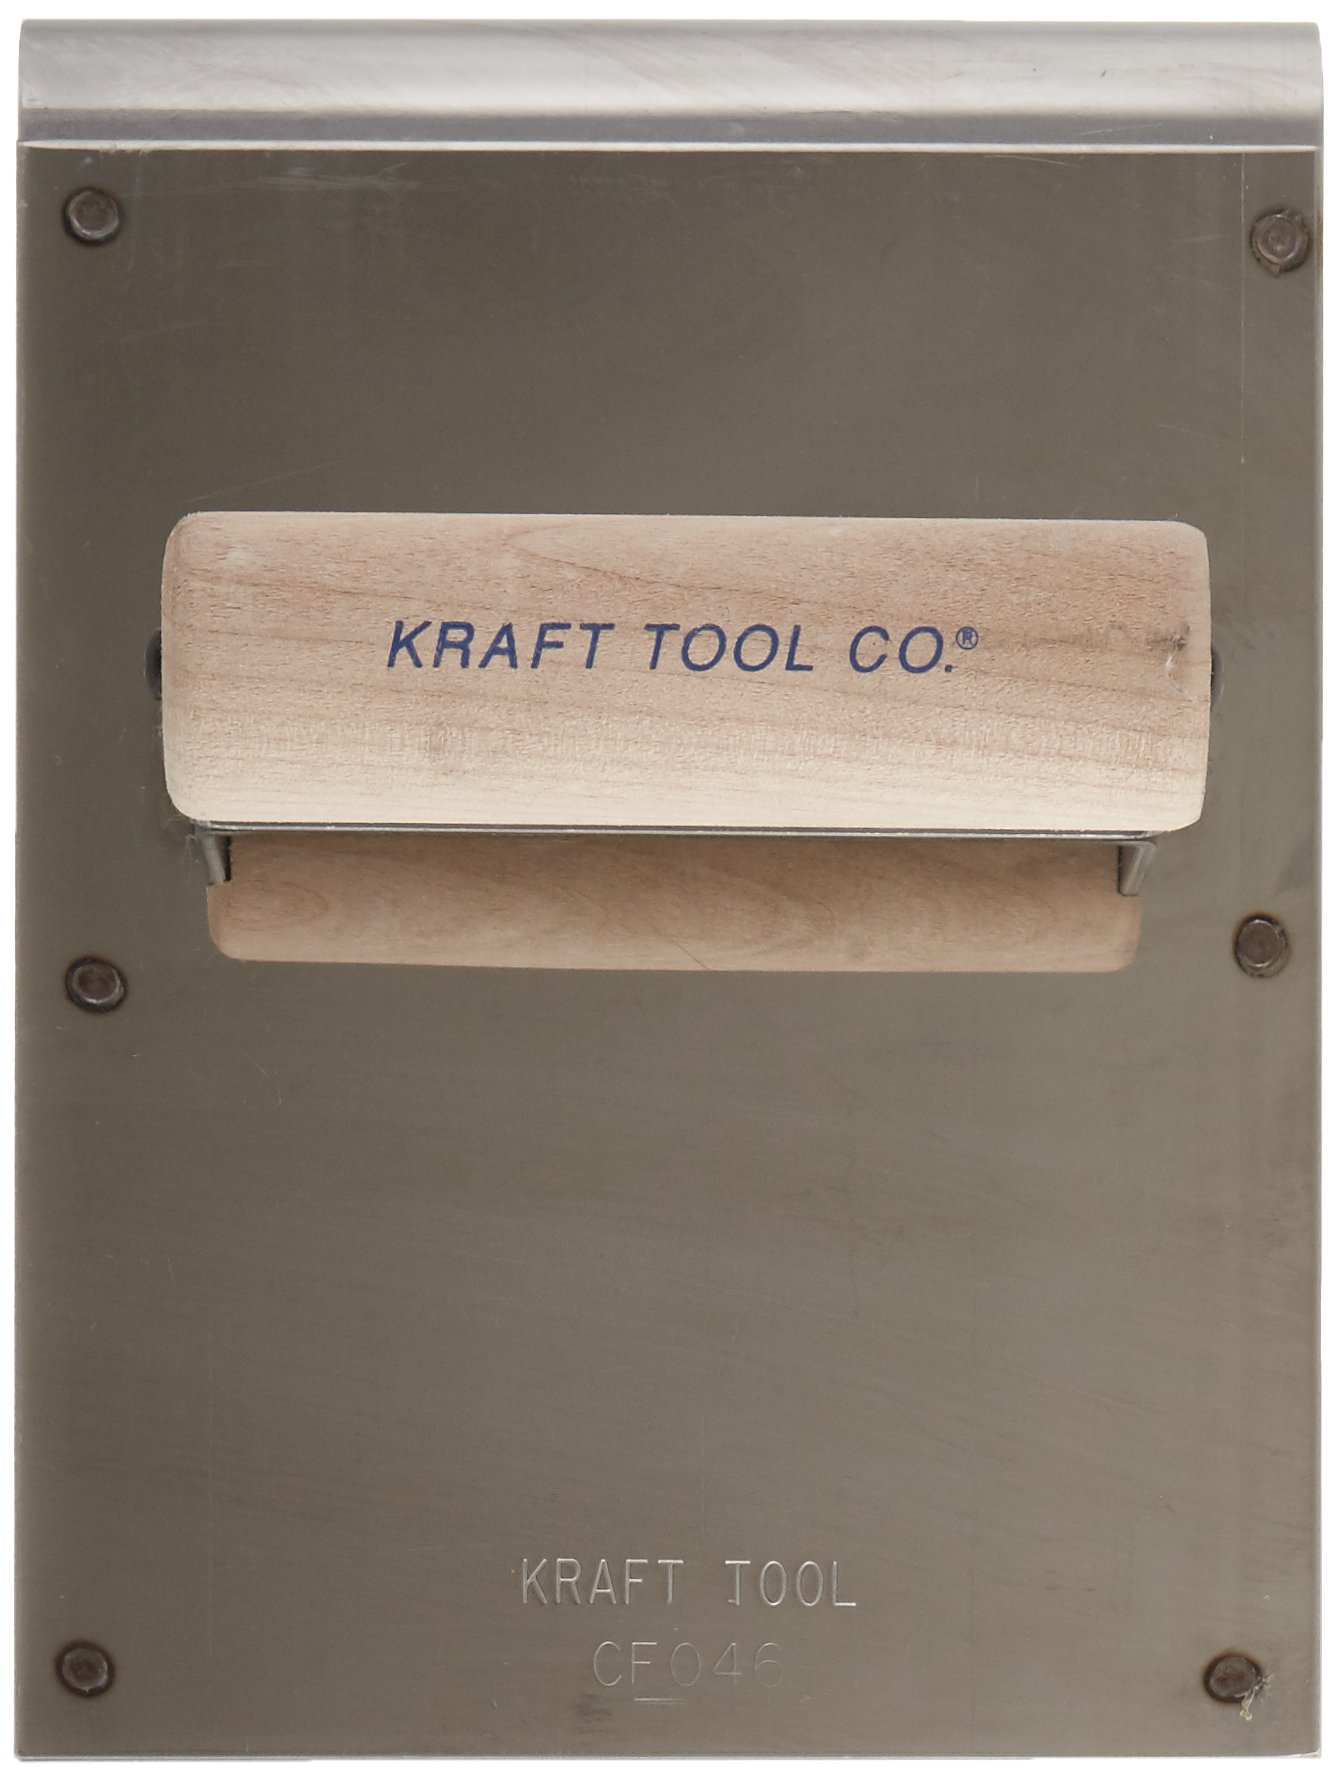 Kraft Tool CF046 Stainless Steel Hand Edger/Groover 1/2-Inch Radius with Wood Handle, 6 x 8-Inch by Kraft Tool (Image #2)